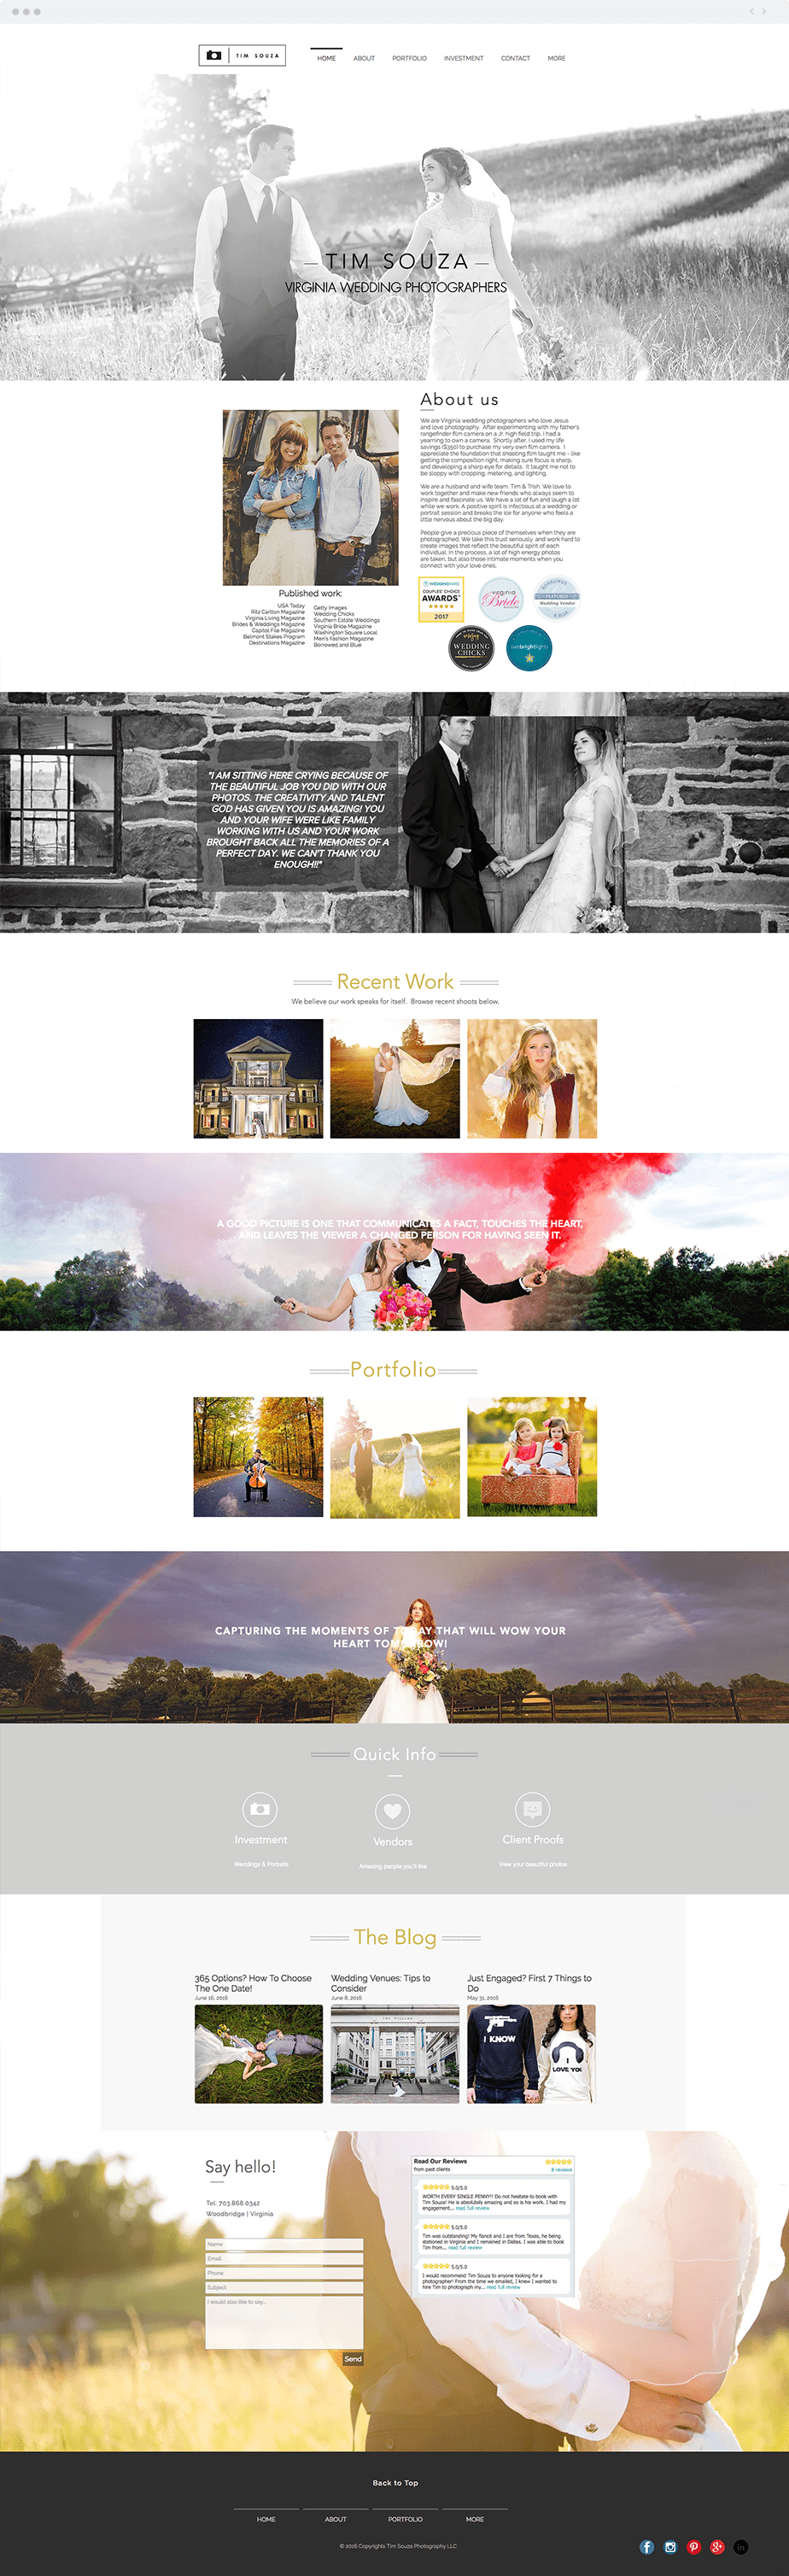 Amazing Wix online portfolio by wedding photographer Tim Souza